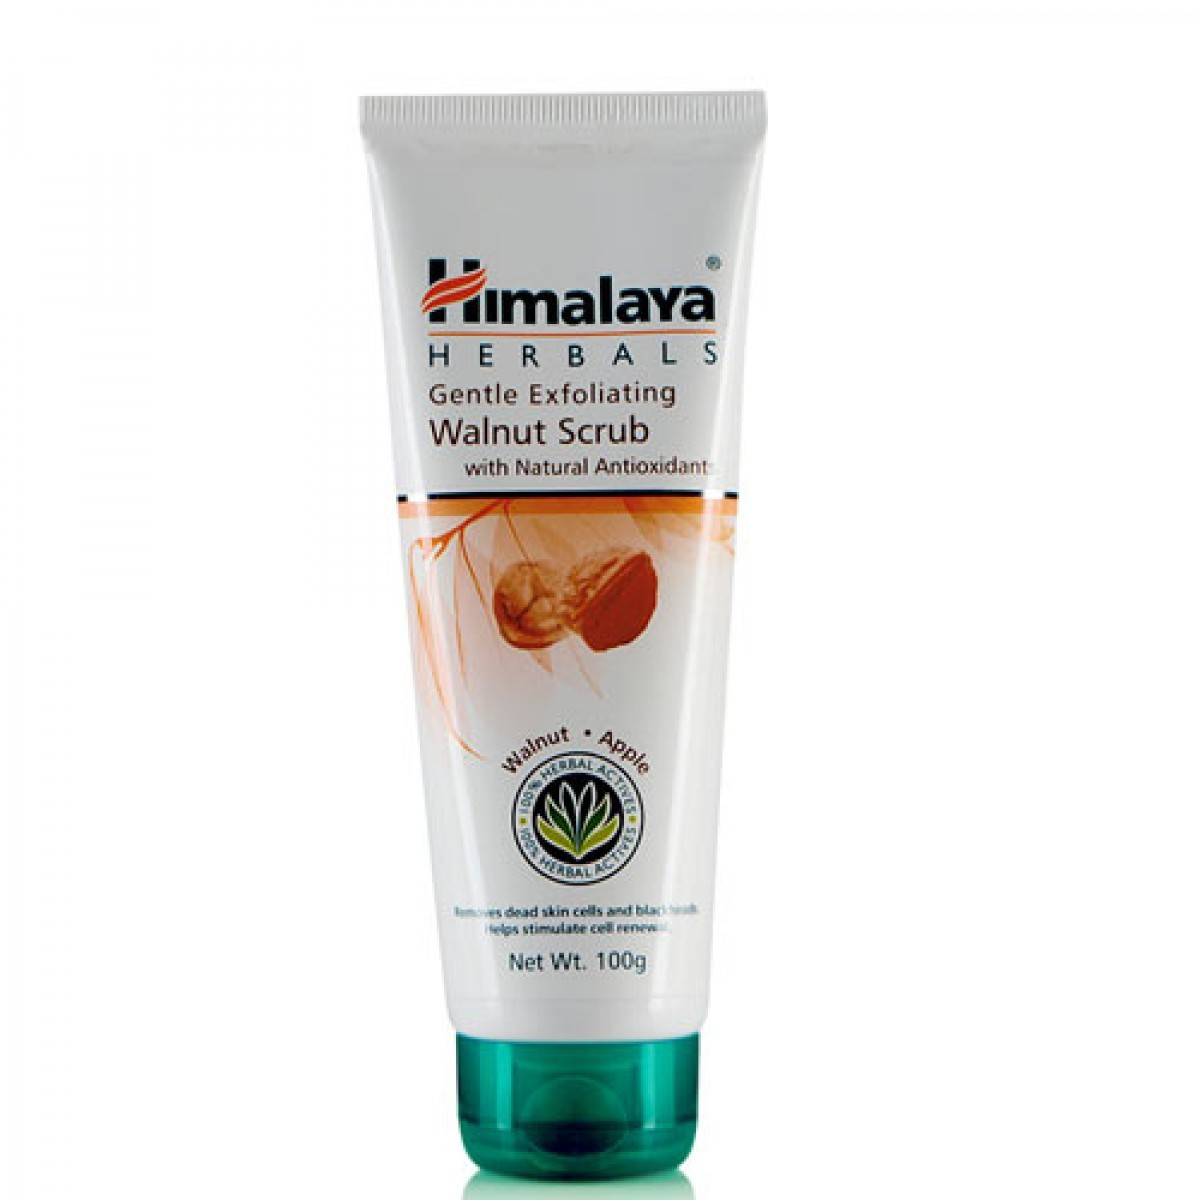 Himalaya Gentle Exfoliating Walnut Scurb Image